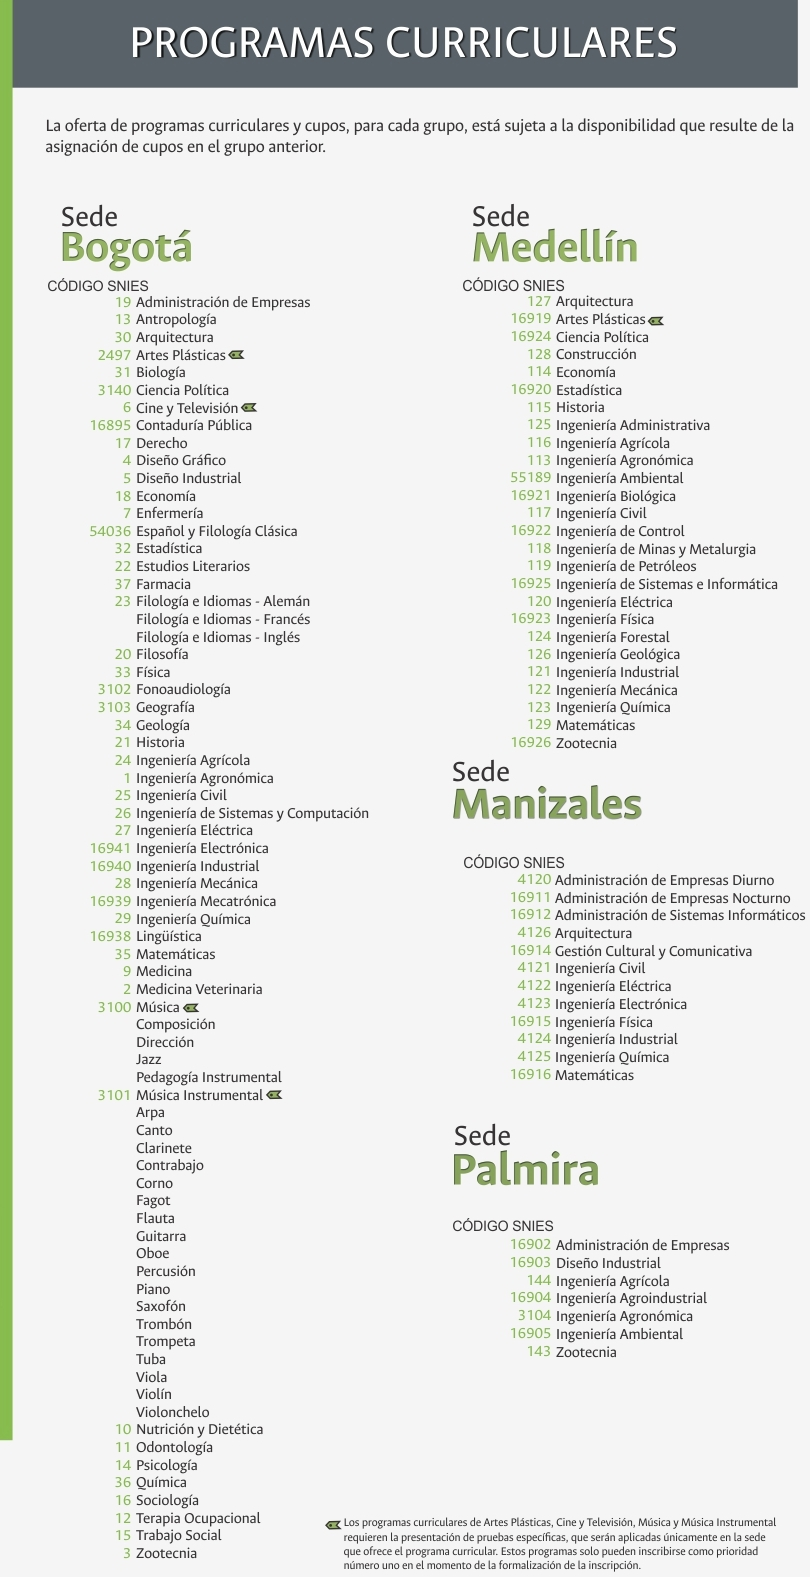 programas-curriculares-pregrado-2017-1-universidad-nacional-colombia